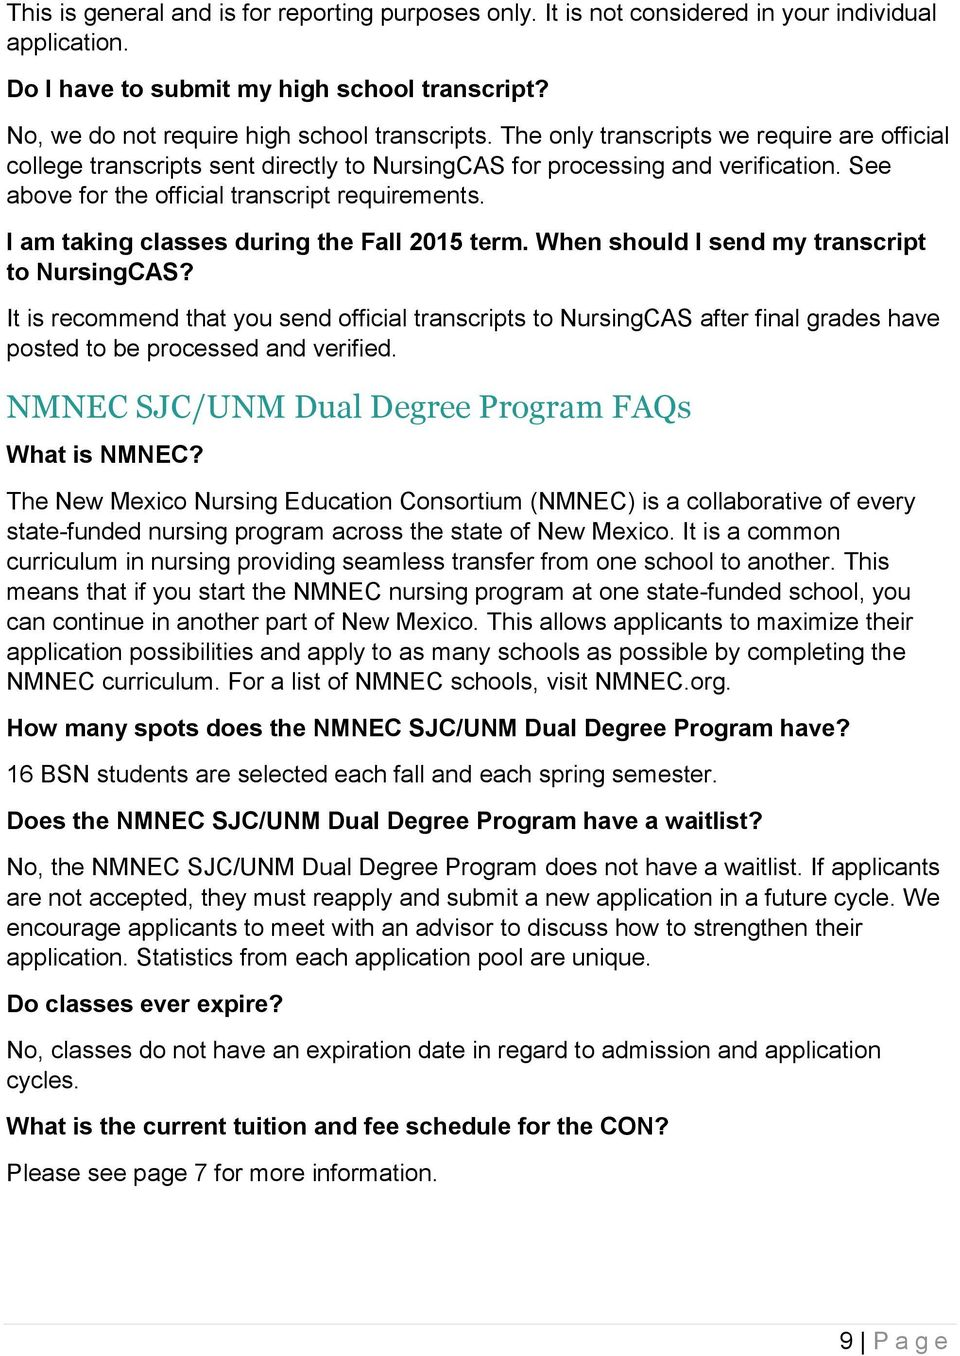 I am taking classes during the Fall 2015 term. When should I send my transcript to NursingCAS?